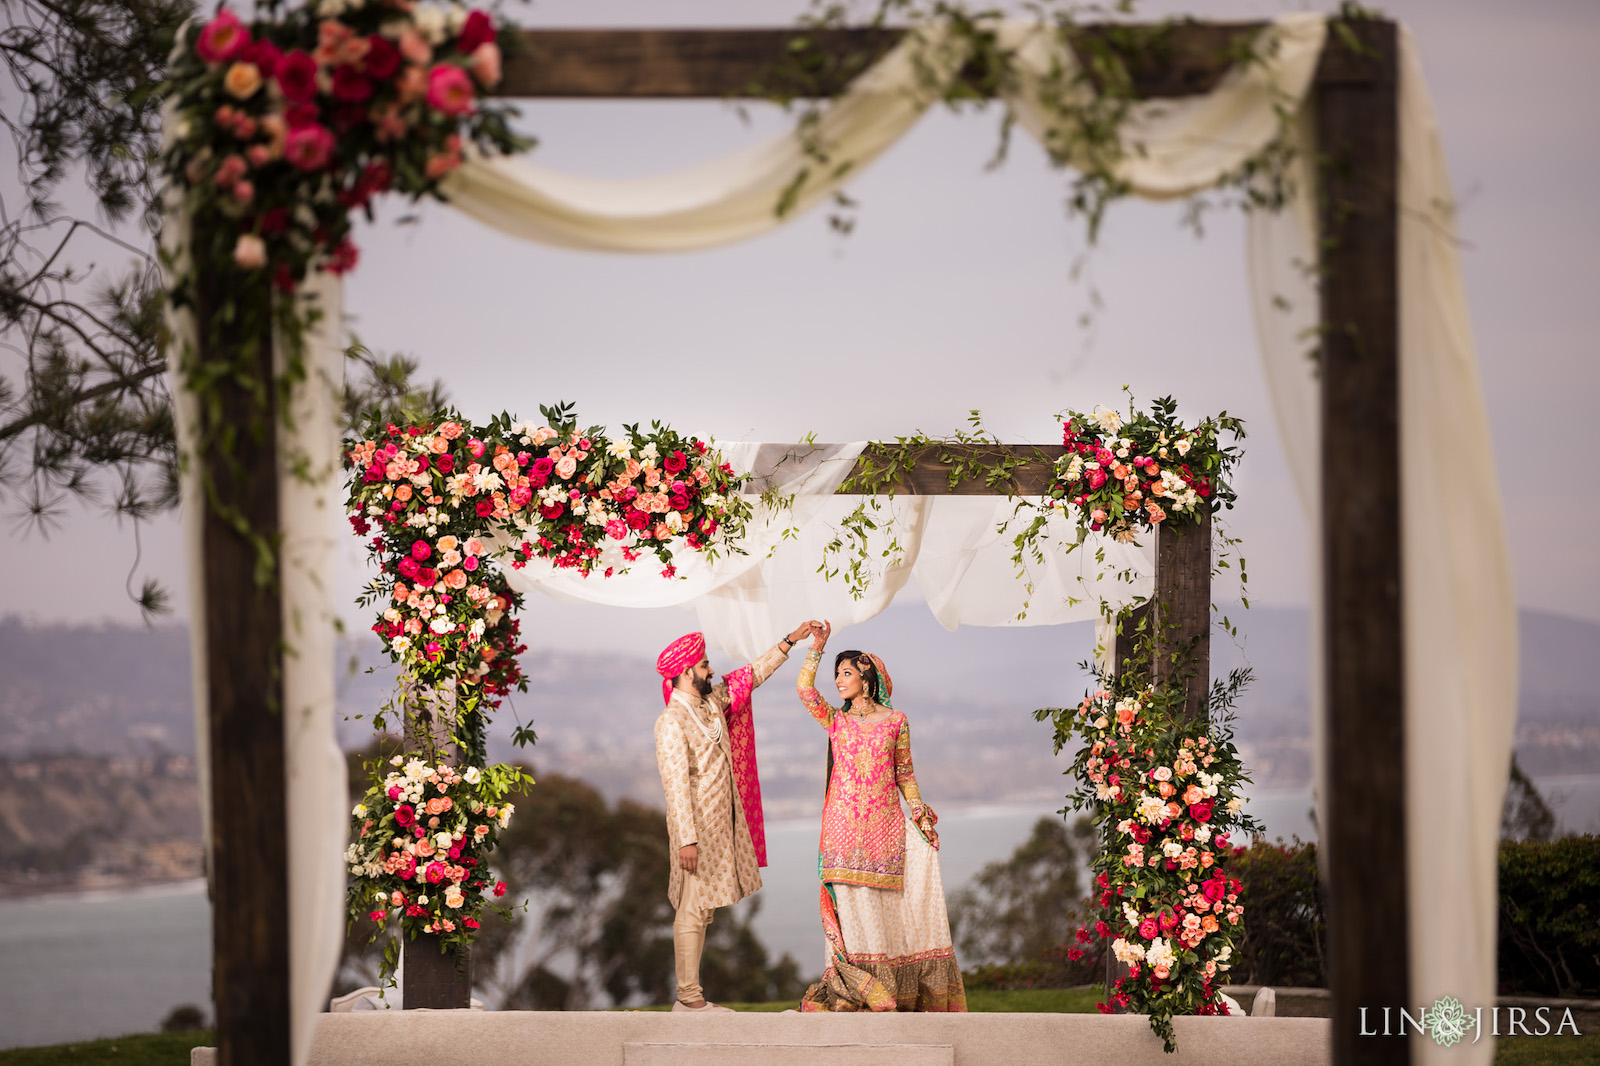 nikah-ceremony-complete-guide-muslim-wedding-traditions-feature